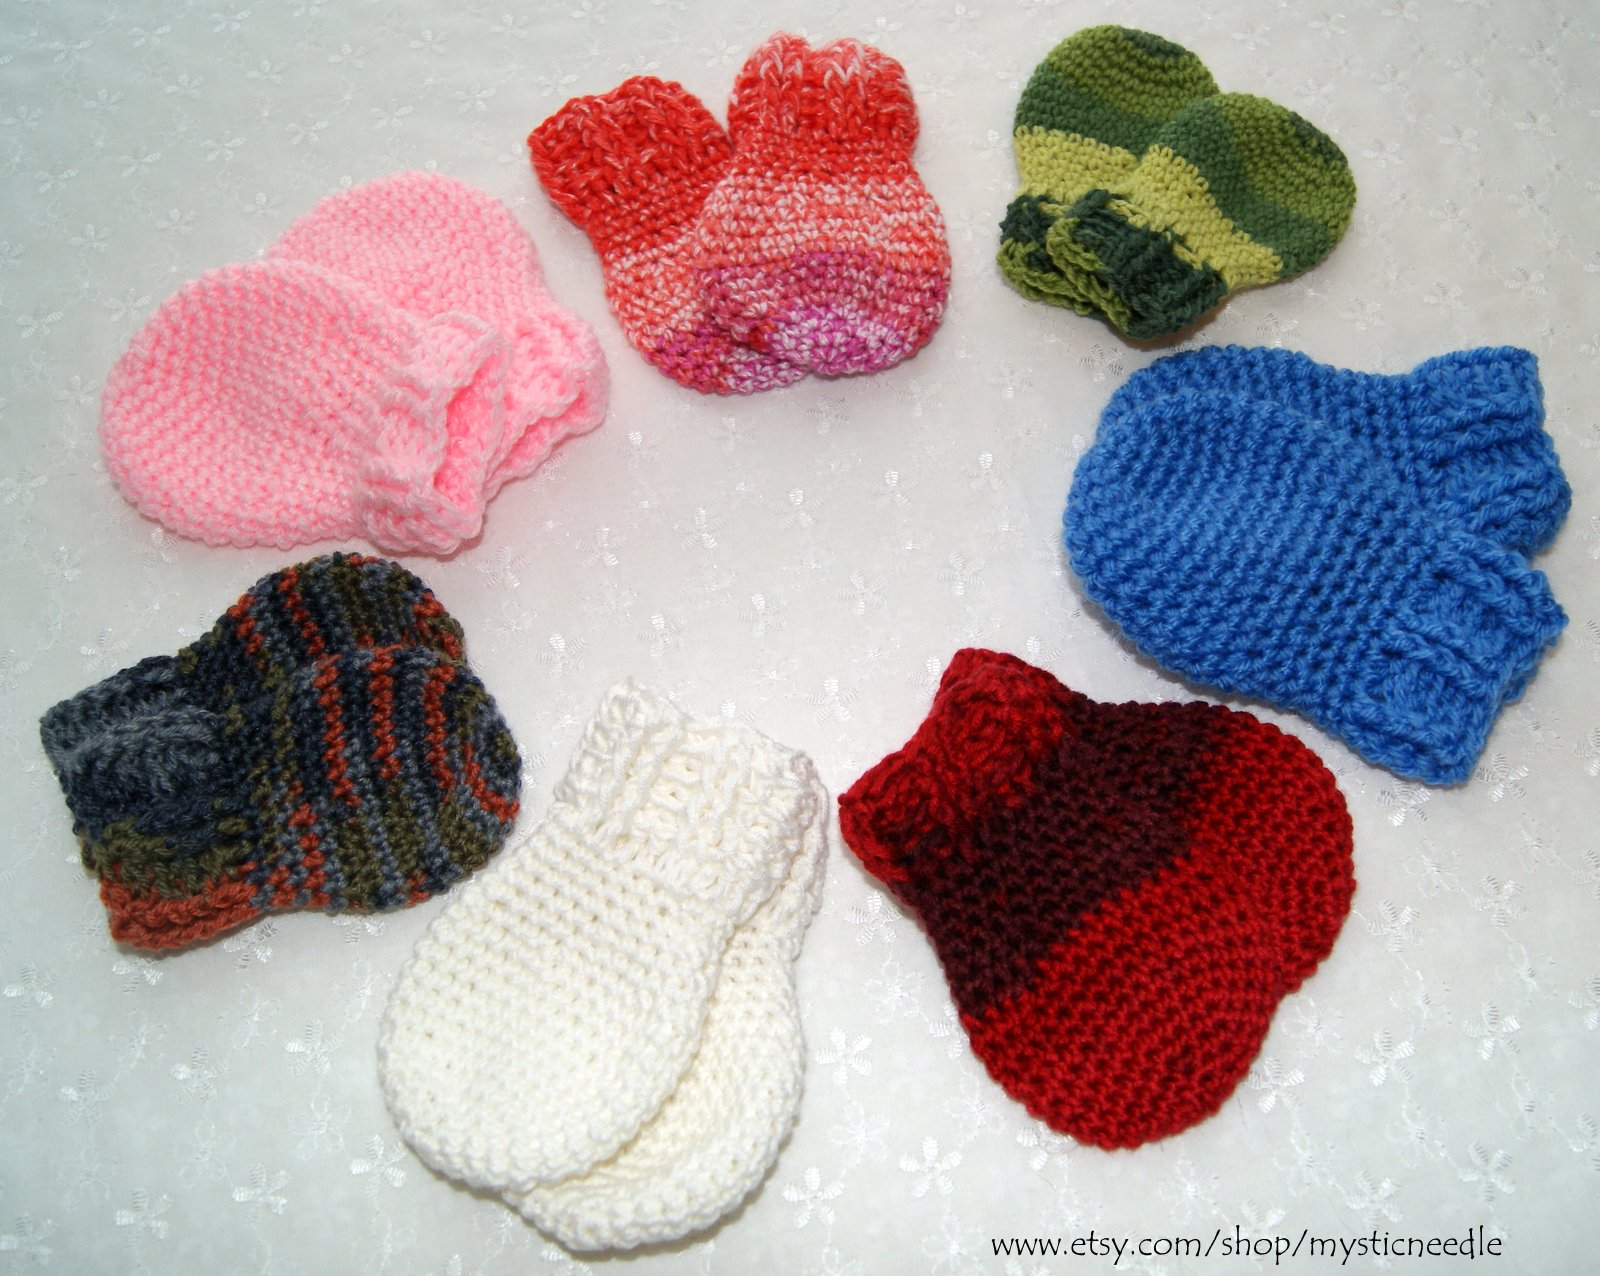 Free Crochet Pattern For Thumbless Mittens : Crochet Thumbless Mittens Stitch4eveR